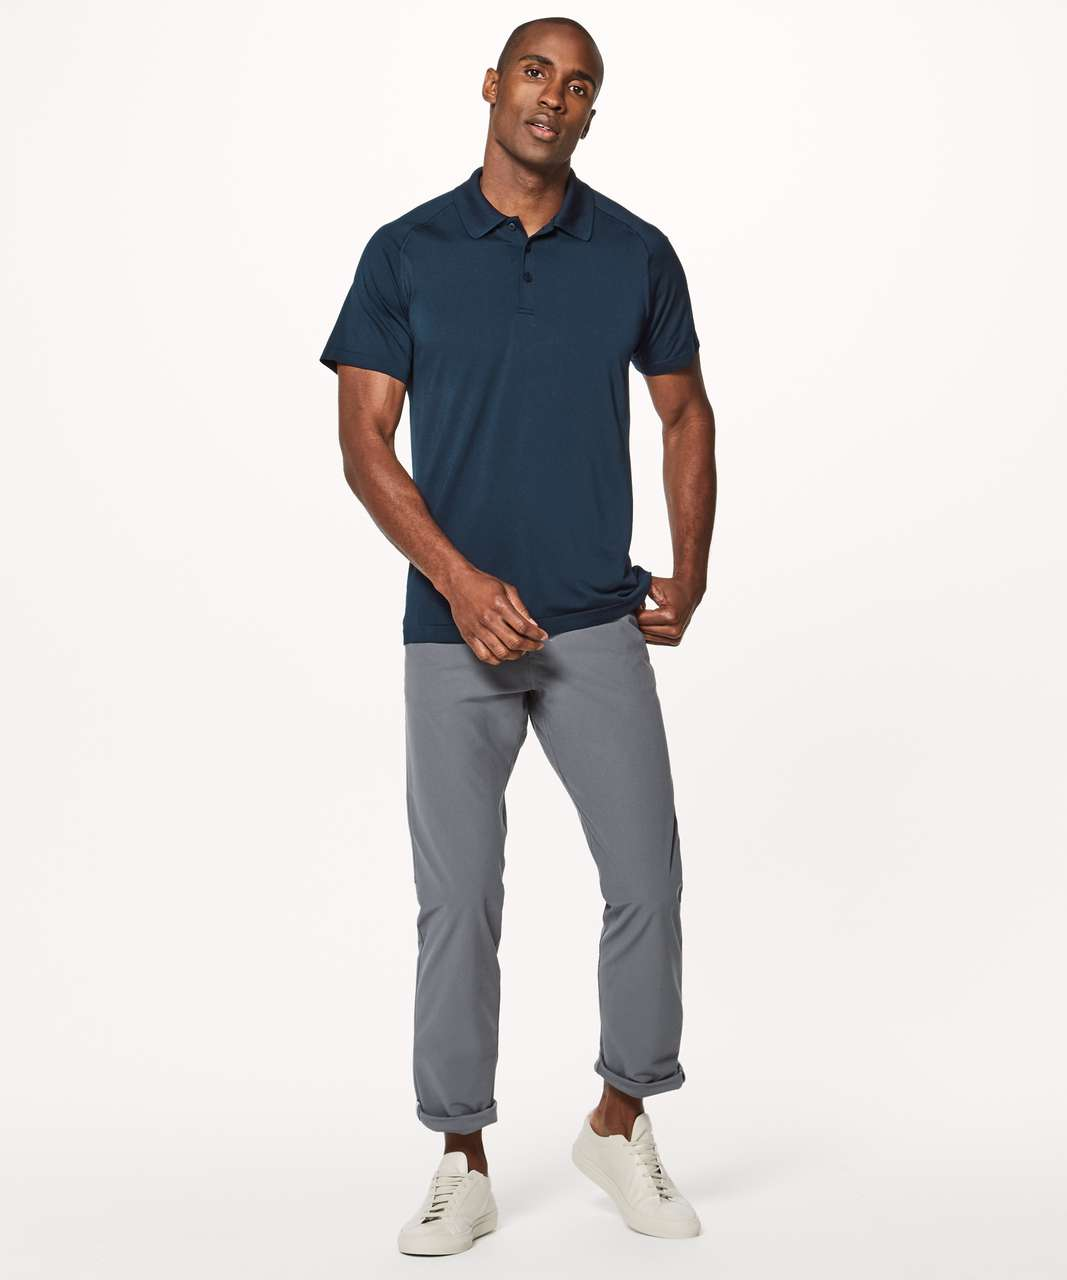 Lululemon Metal Vent Tech Polo - Nautical Navy / Nautical Navy (First Release)